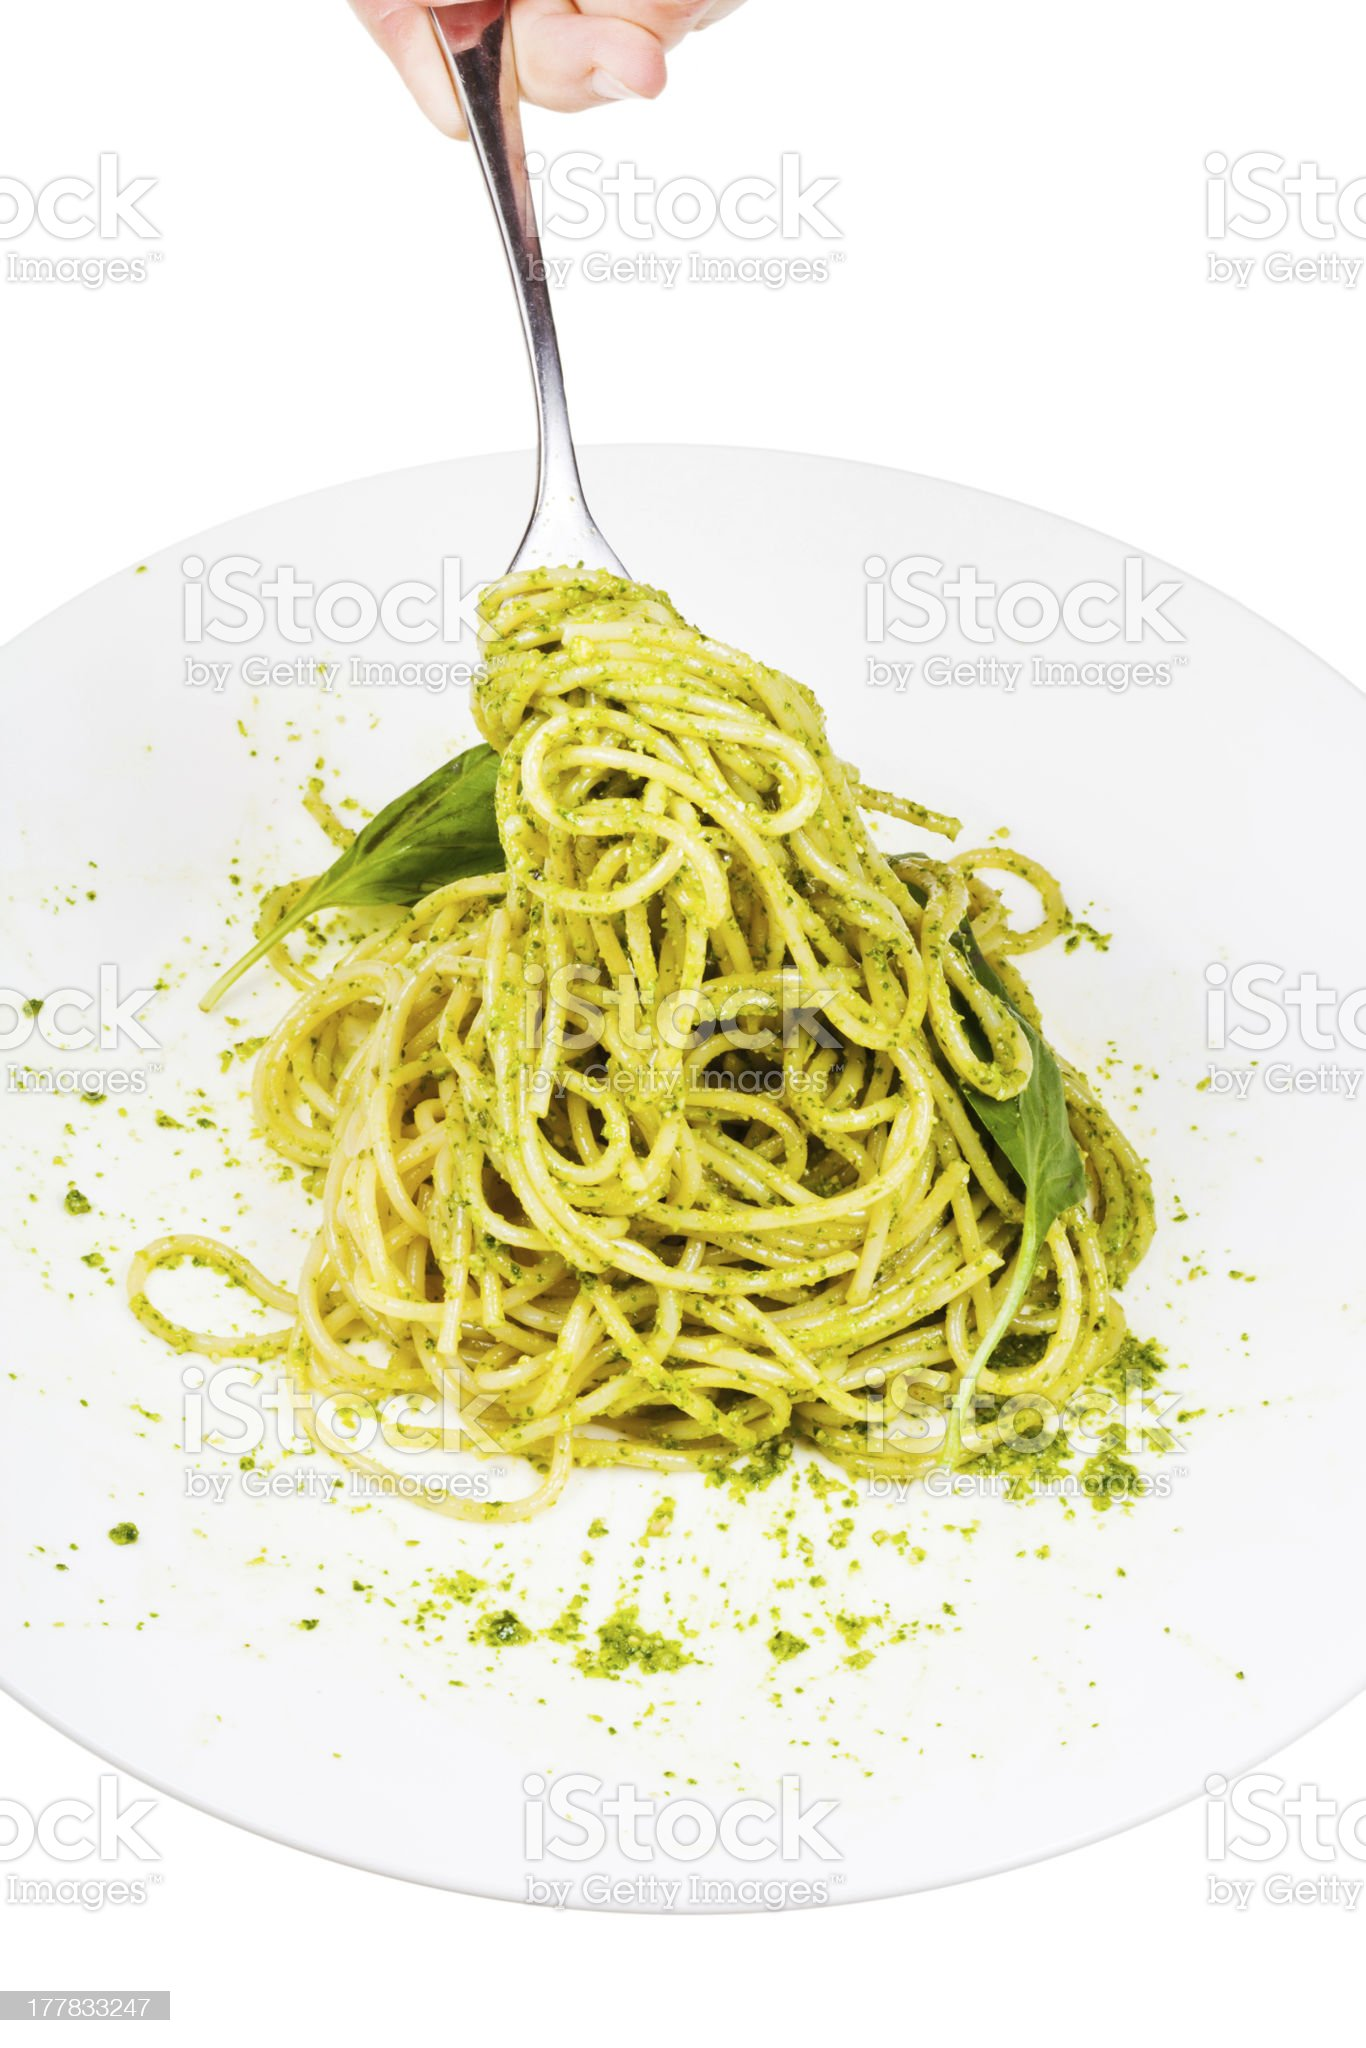 eating spaghetti with pesto isolated on white background royalty-free stock photo